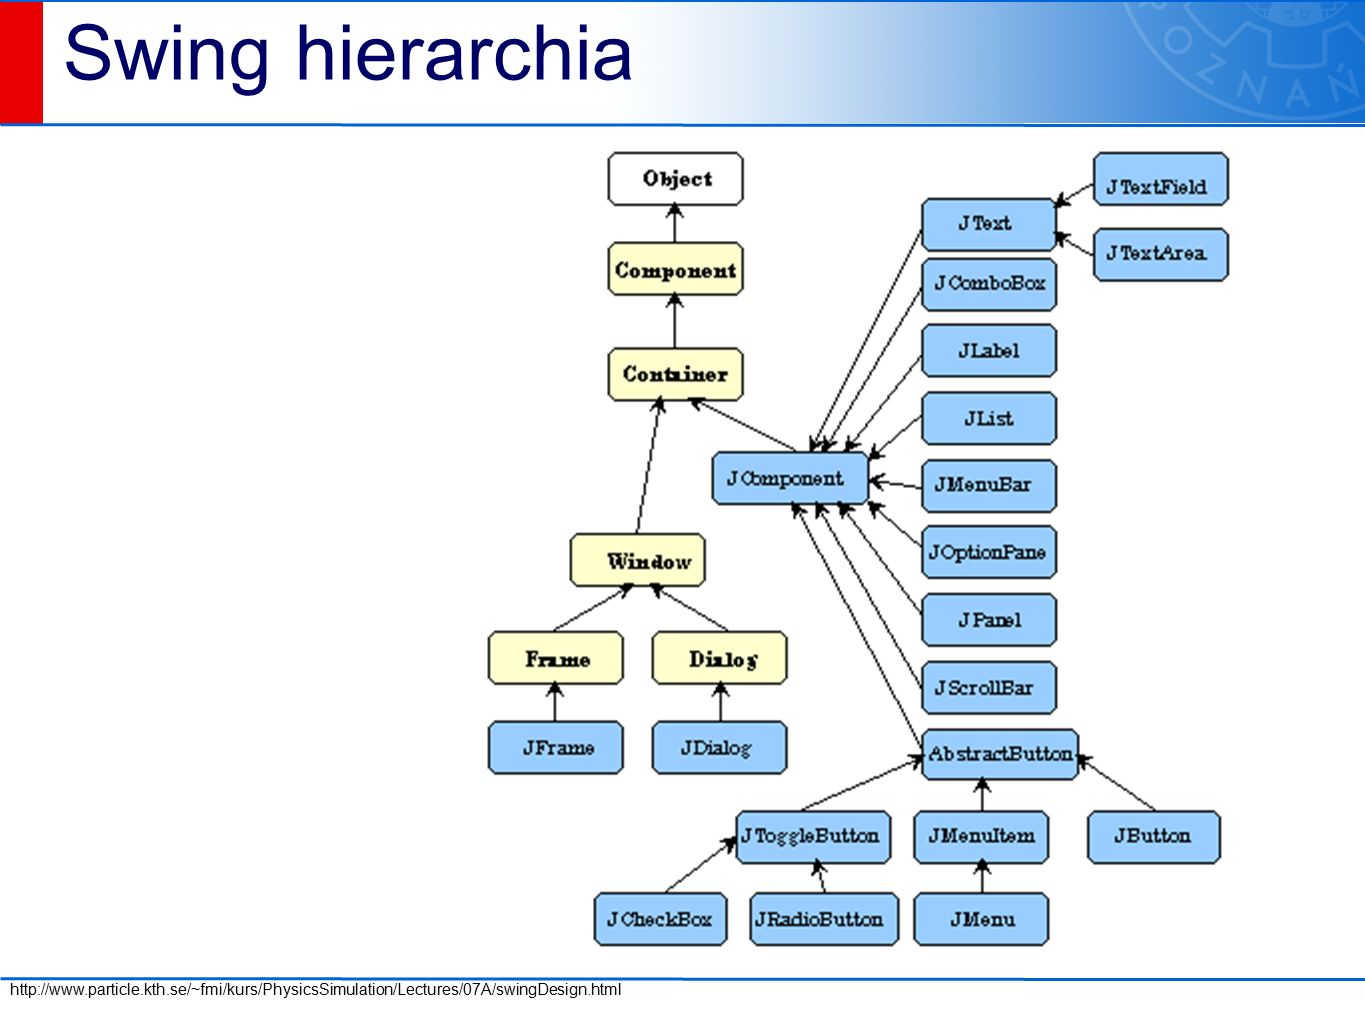 Swing hierarchia http://www.particle.kth.se/~fmi/kurs/PhysicsSimulation/Lectures/07A/swingDesign.html